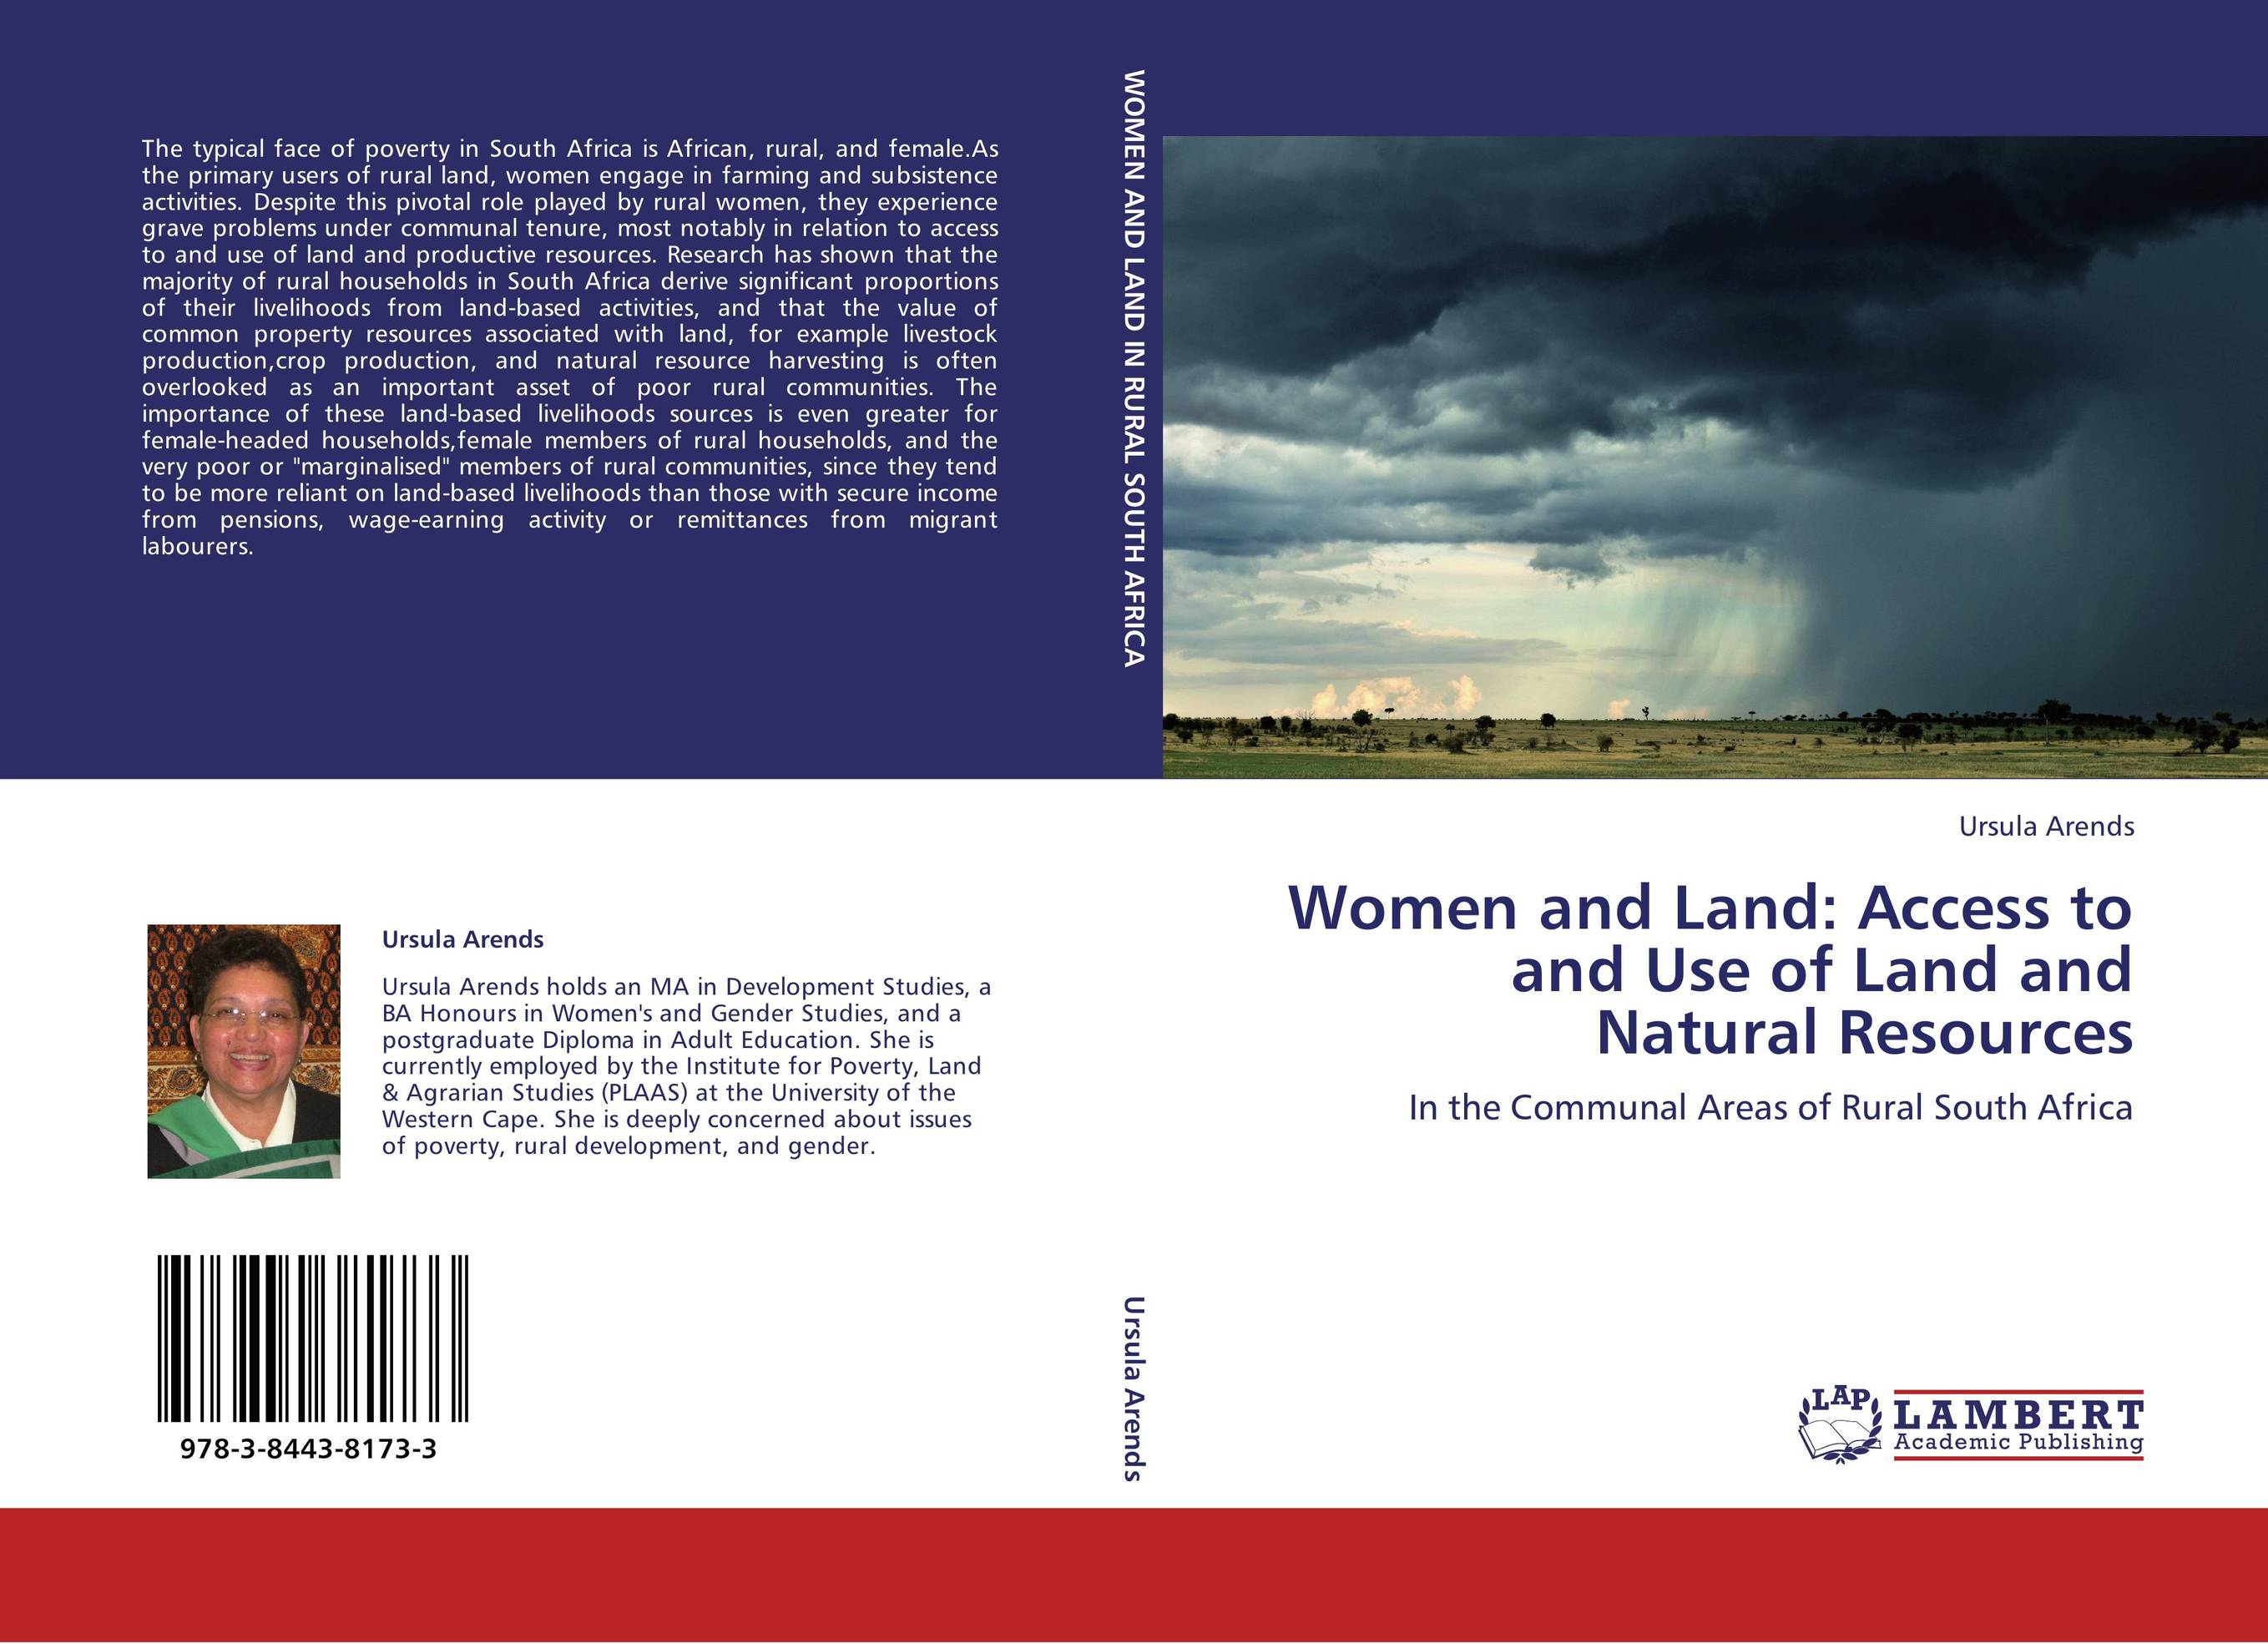 conclusion of land resources Population-environment researchers have not dedicated the same level of attention to population dynamics and water resources as they have to research on land-cover change, agricultural systems, or climate change.